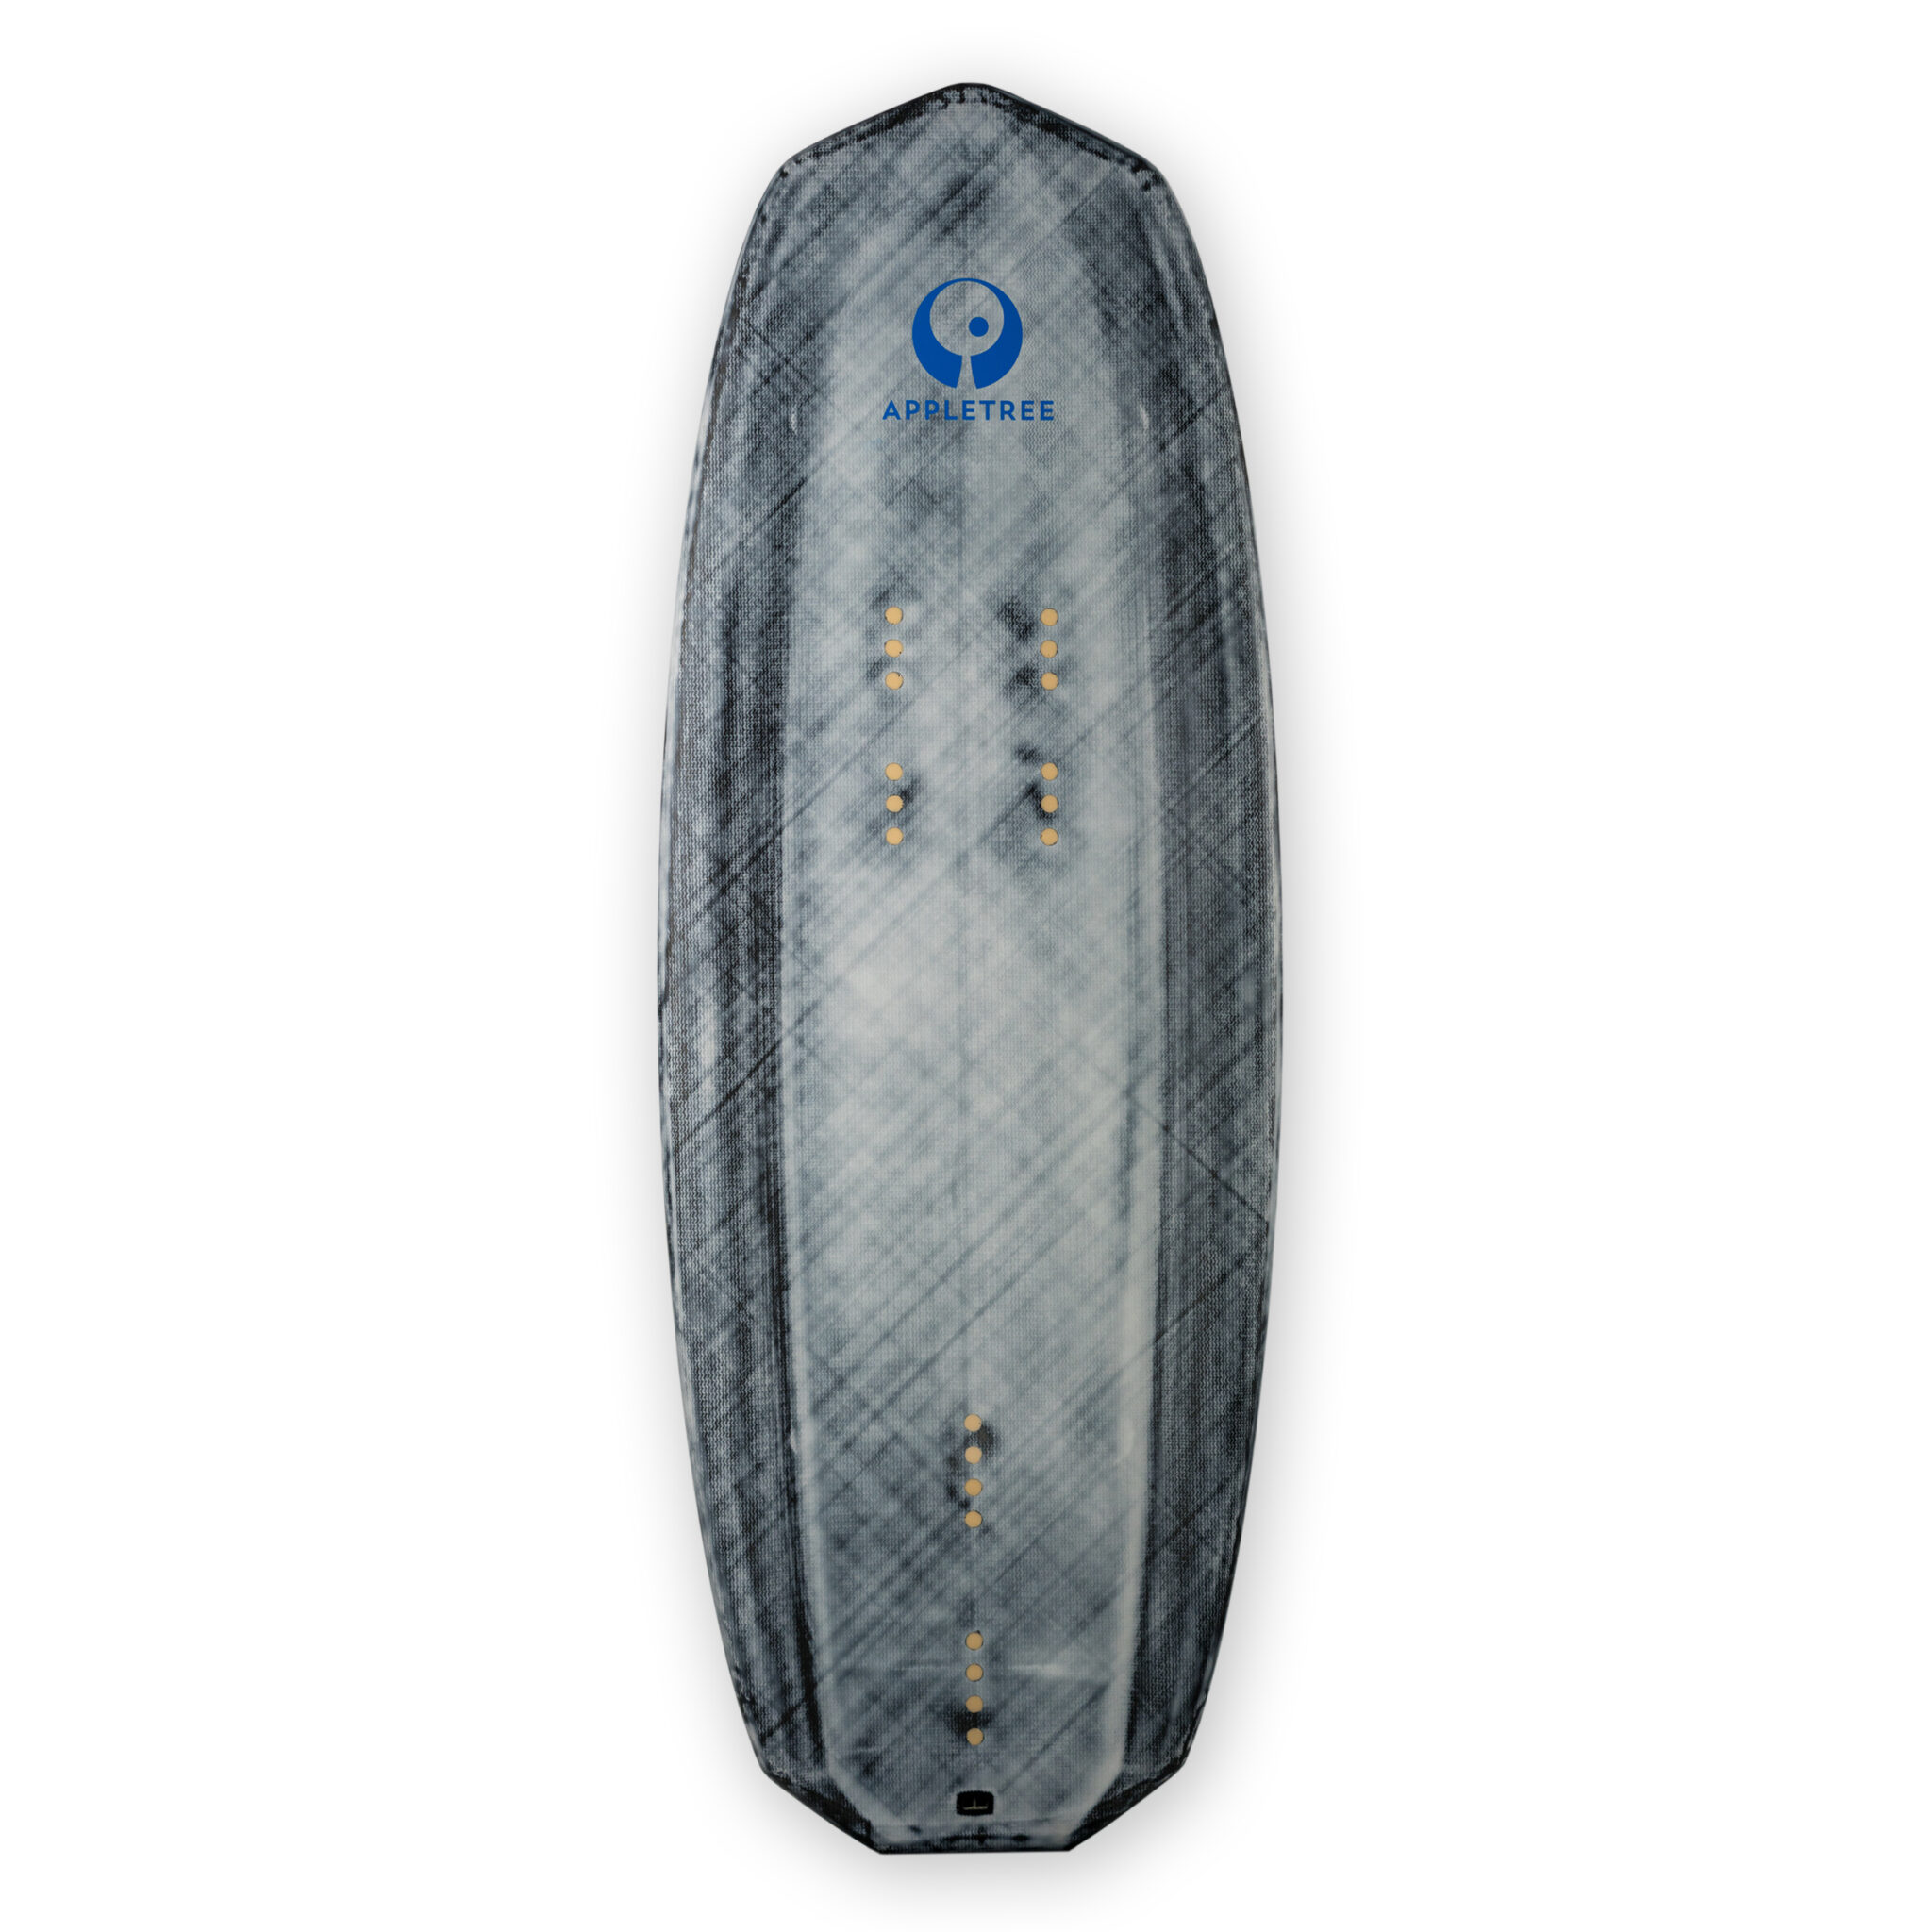 Appleslice Surf foil board